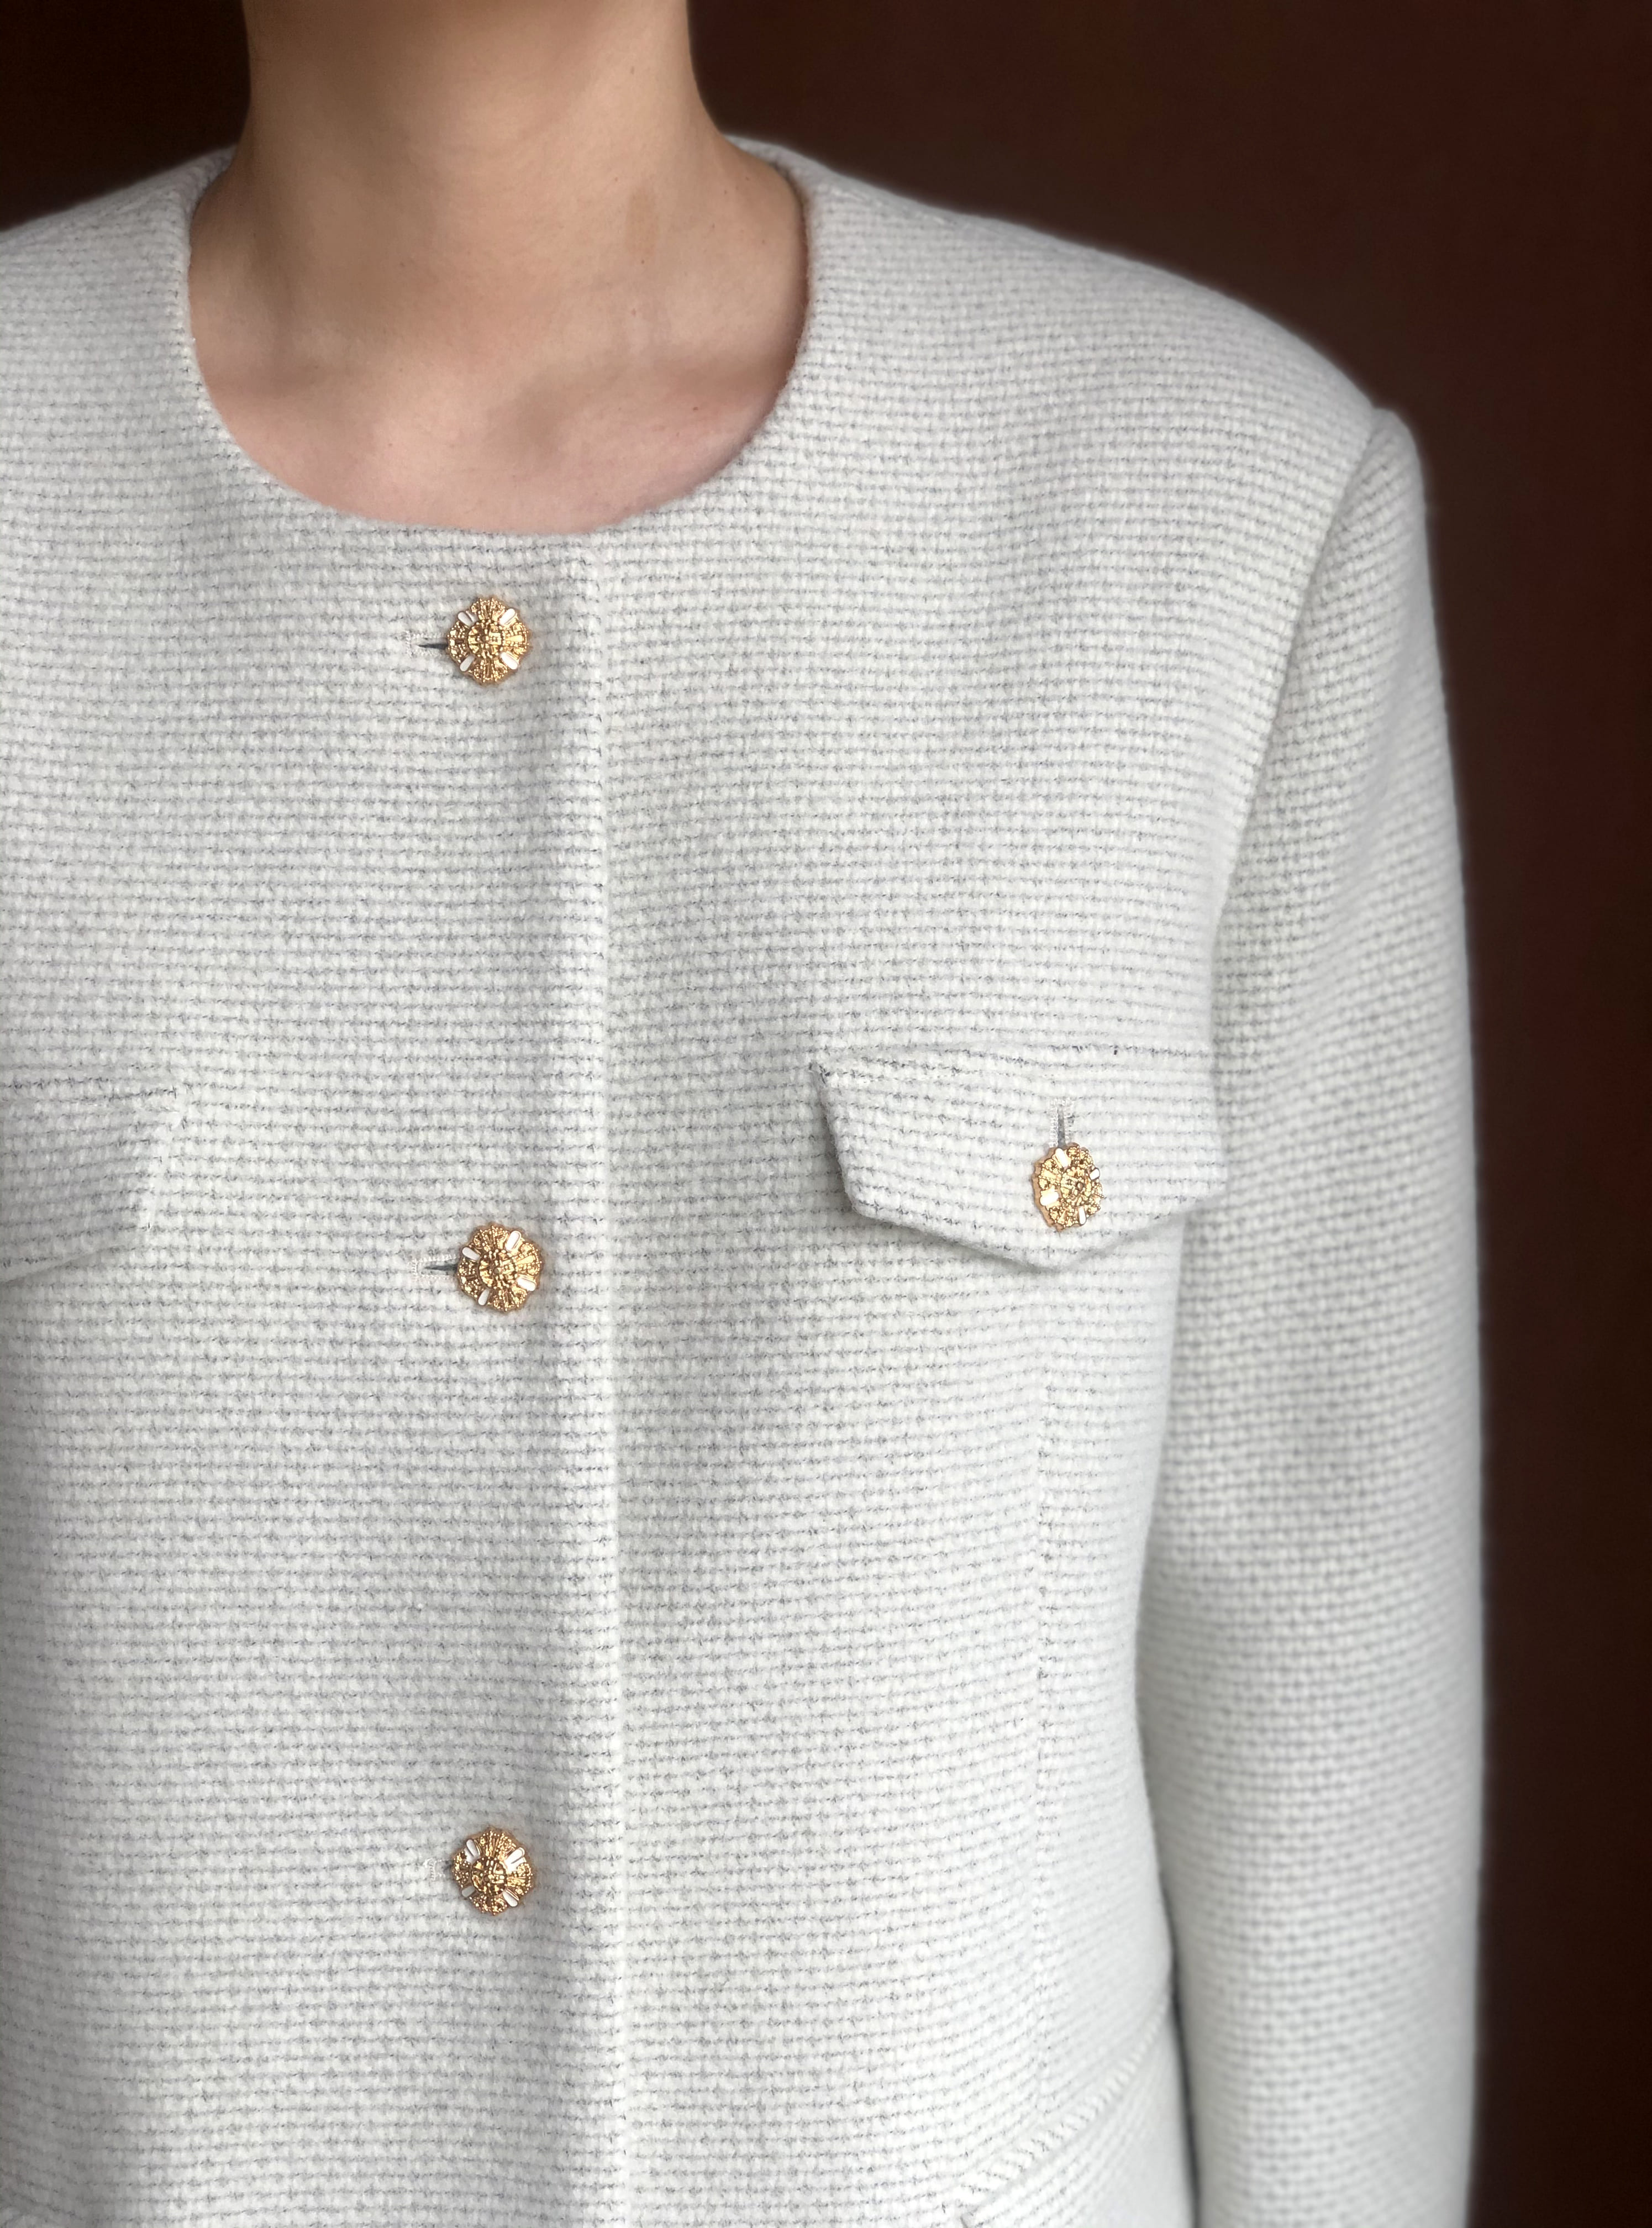 ROUND BOY JACKET in cream